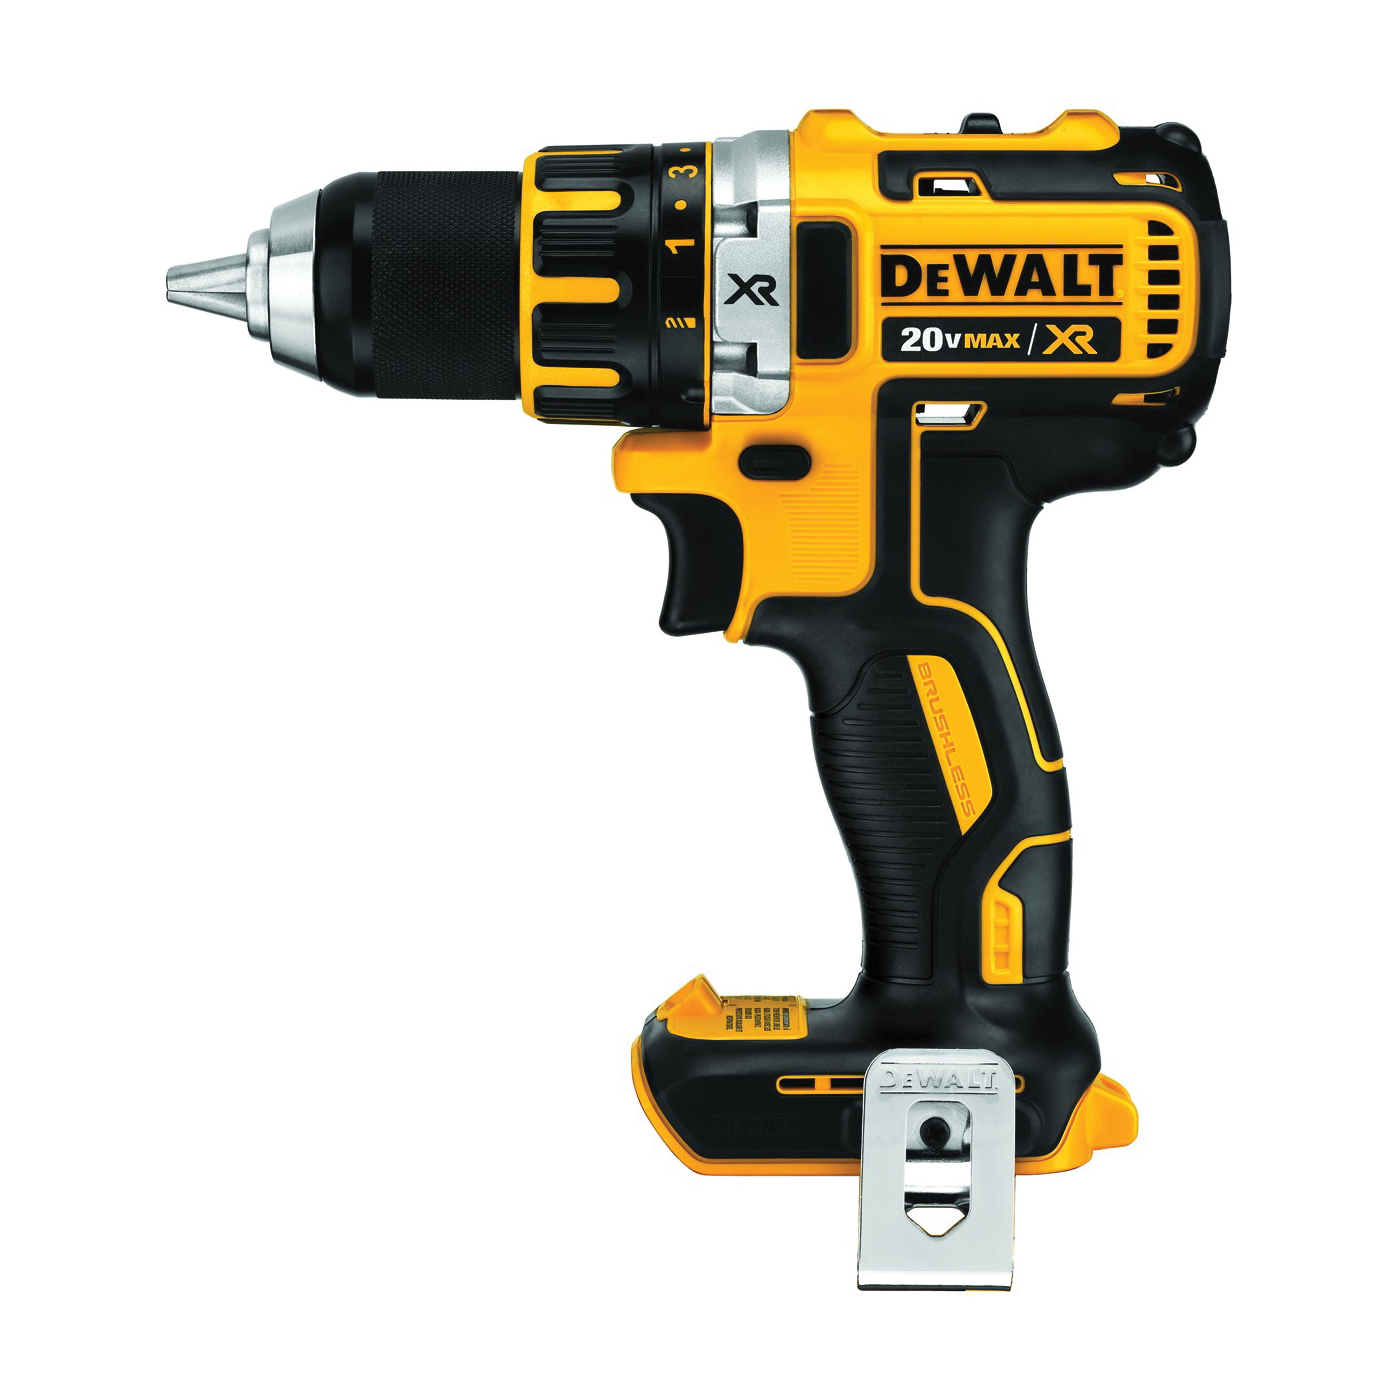 Picture of DeWALT DCD791B Drill/Driver, Bare Tool, 20 V Battery, 1/2 in Chuck, Ratcheting Chuck, Battery Included: No